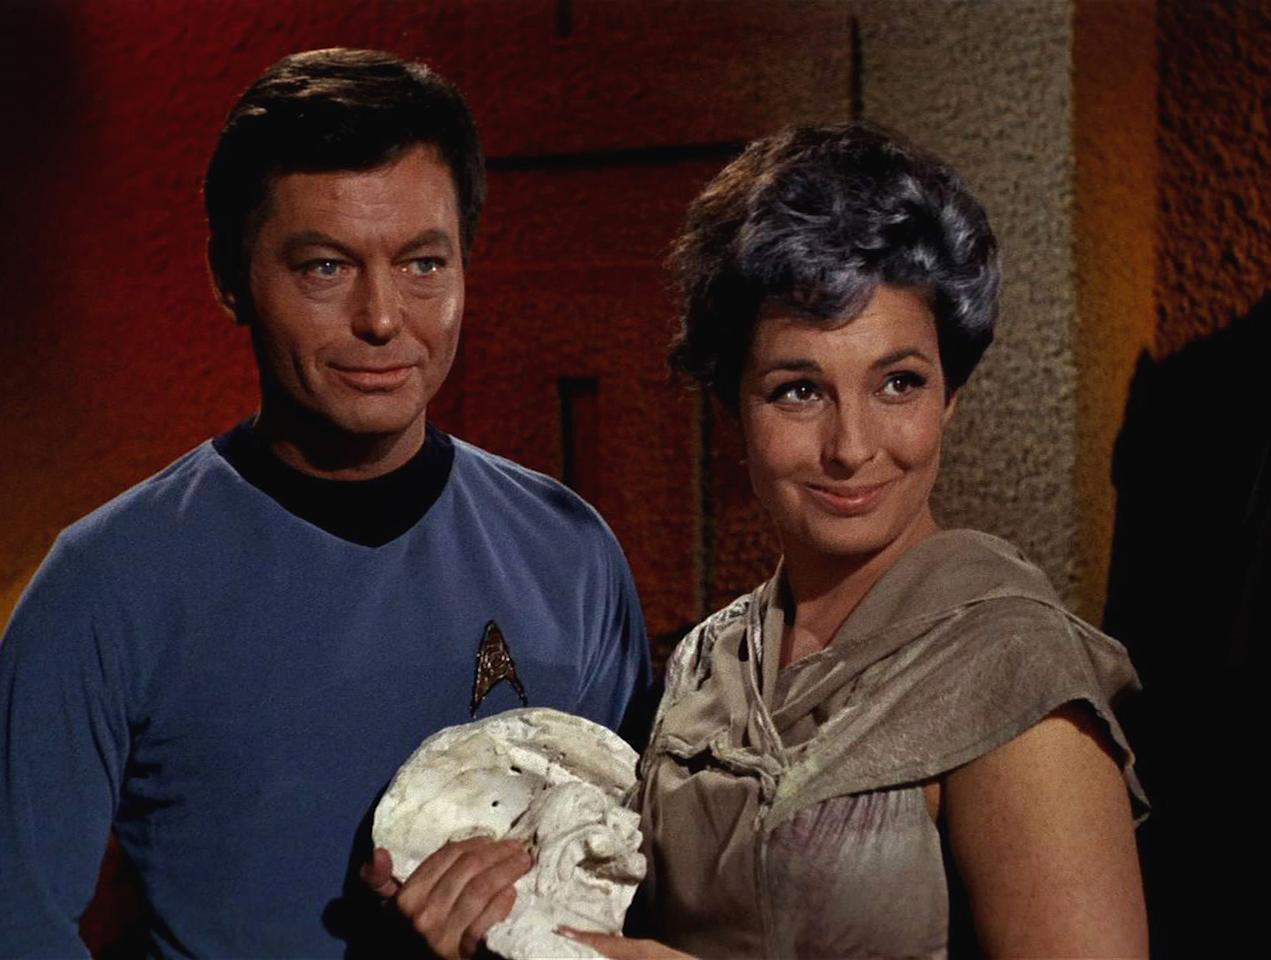 American actor DeForest Kelley (1920 - 1999) as Dr. Leonard 'Bones' McCoy and American actress Jeanne Bal (1928 - 1996) as Nancy Crater appear in a scene from 'The Man Trap,' the premiere episode of 'Star Trek,' which aired on September 8, 1966. (Photo by CBS Photo Archive/Getty Images)